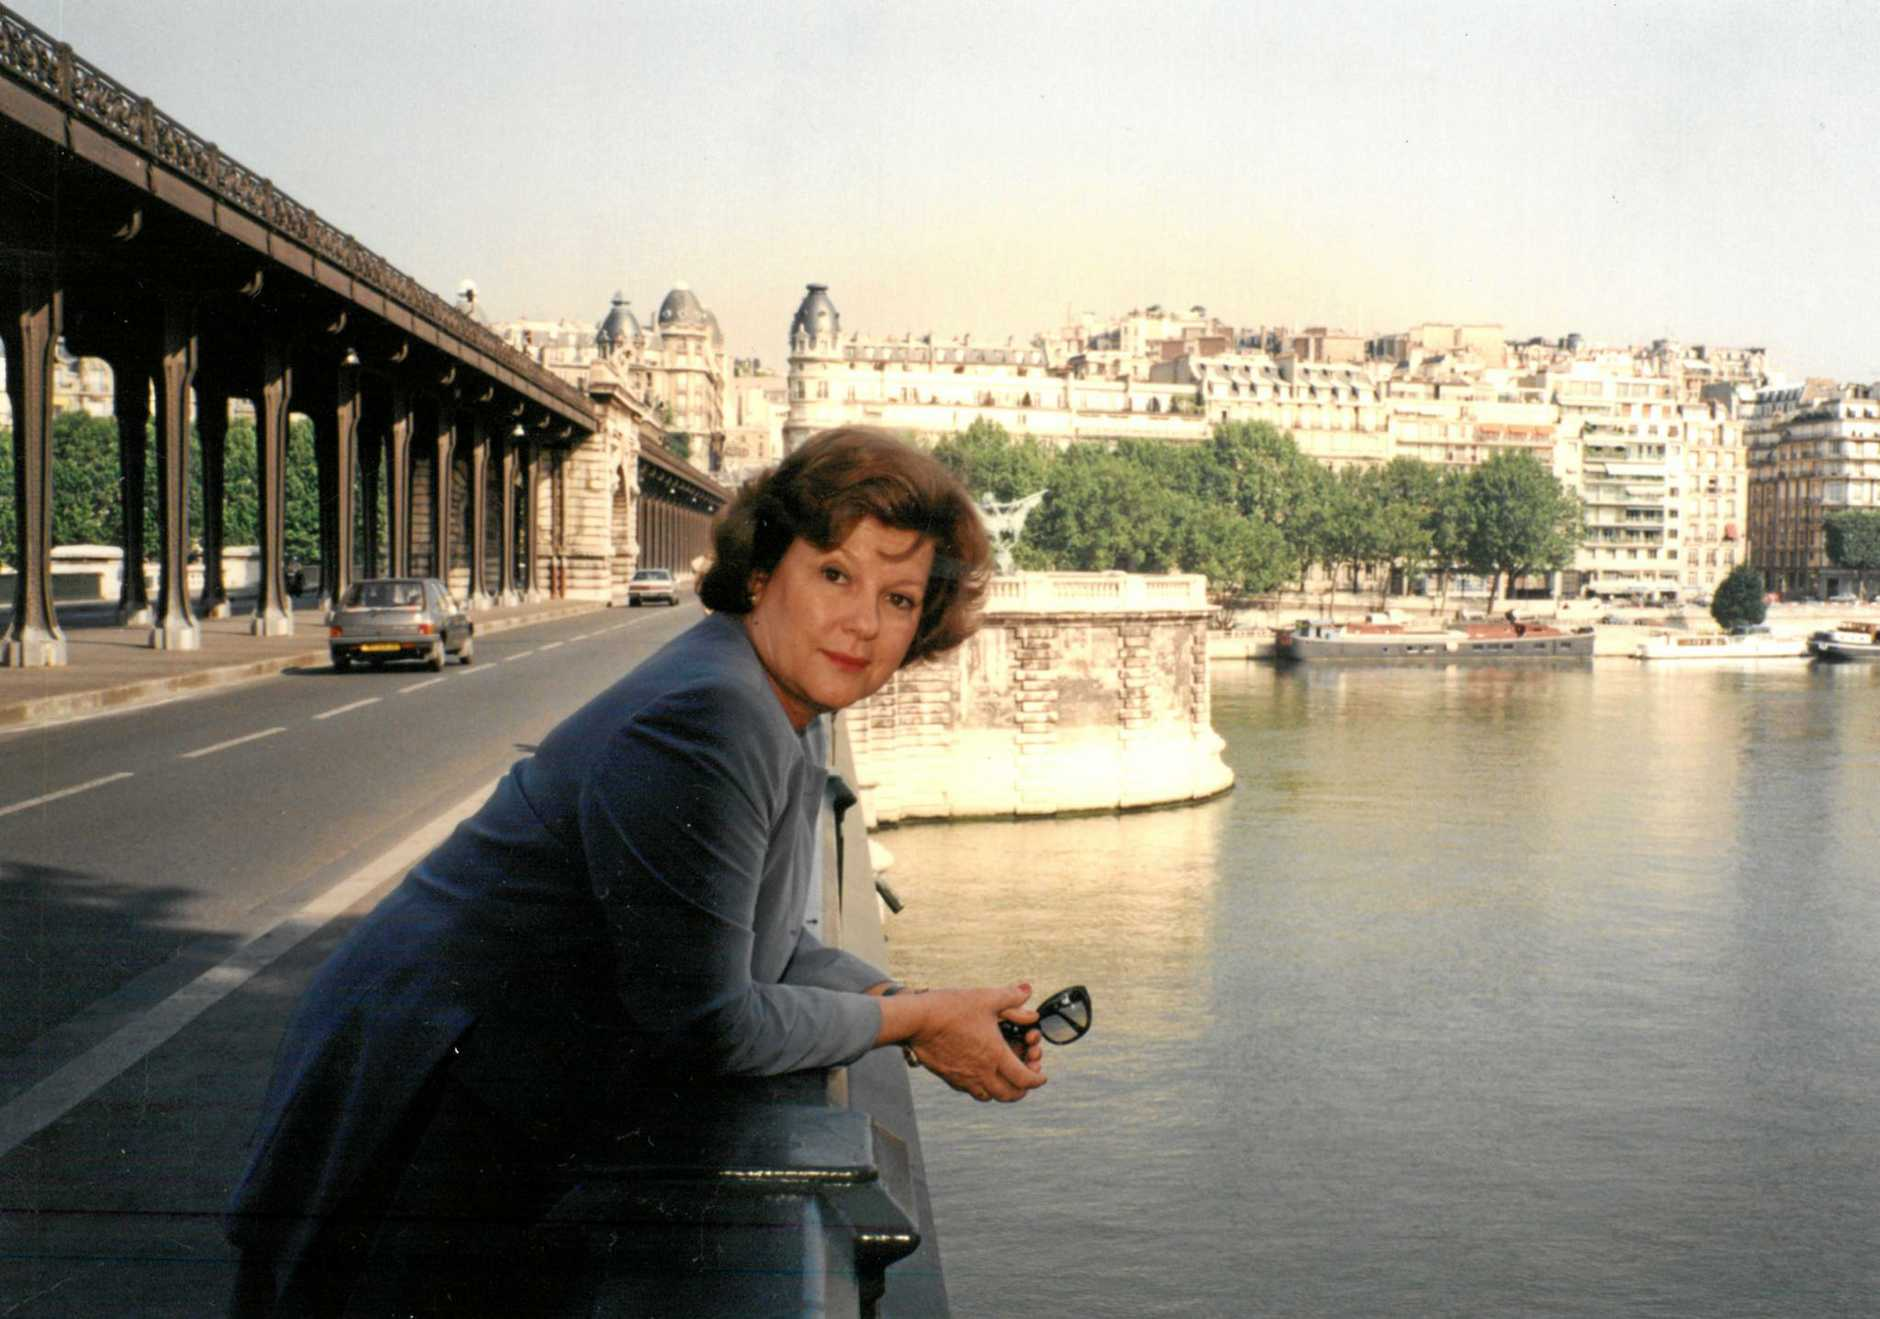 MANY ROLES: Sallyanne in Paris during her time as Senior Trade Commissioner to France.